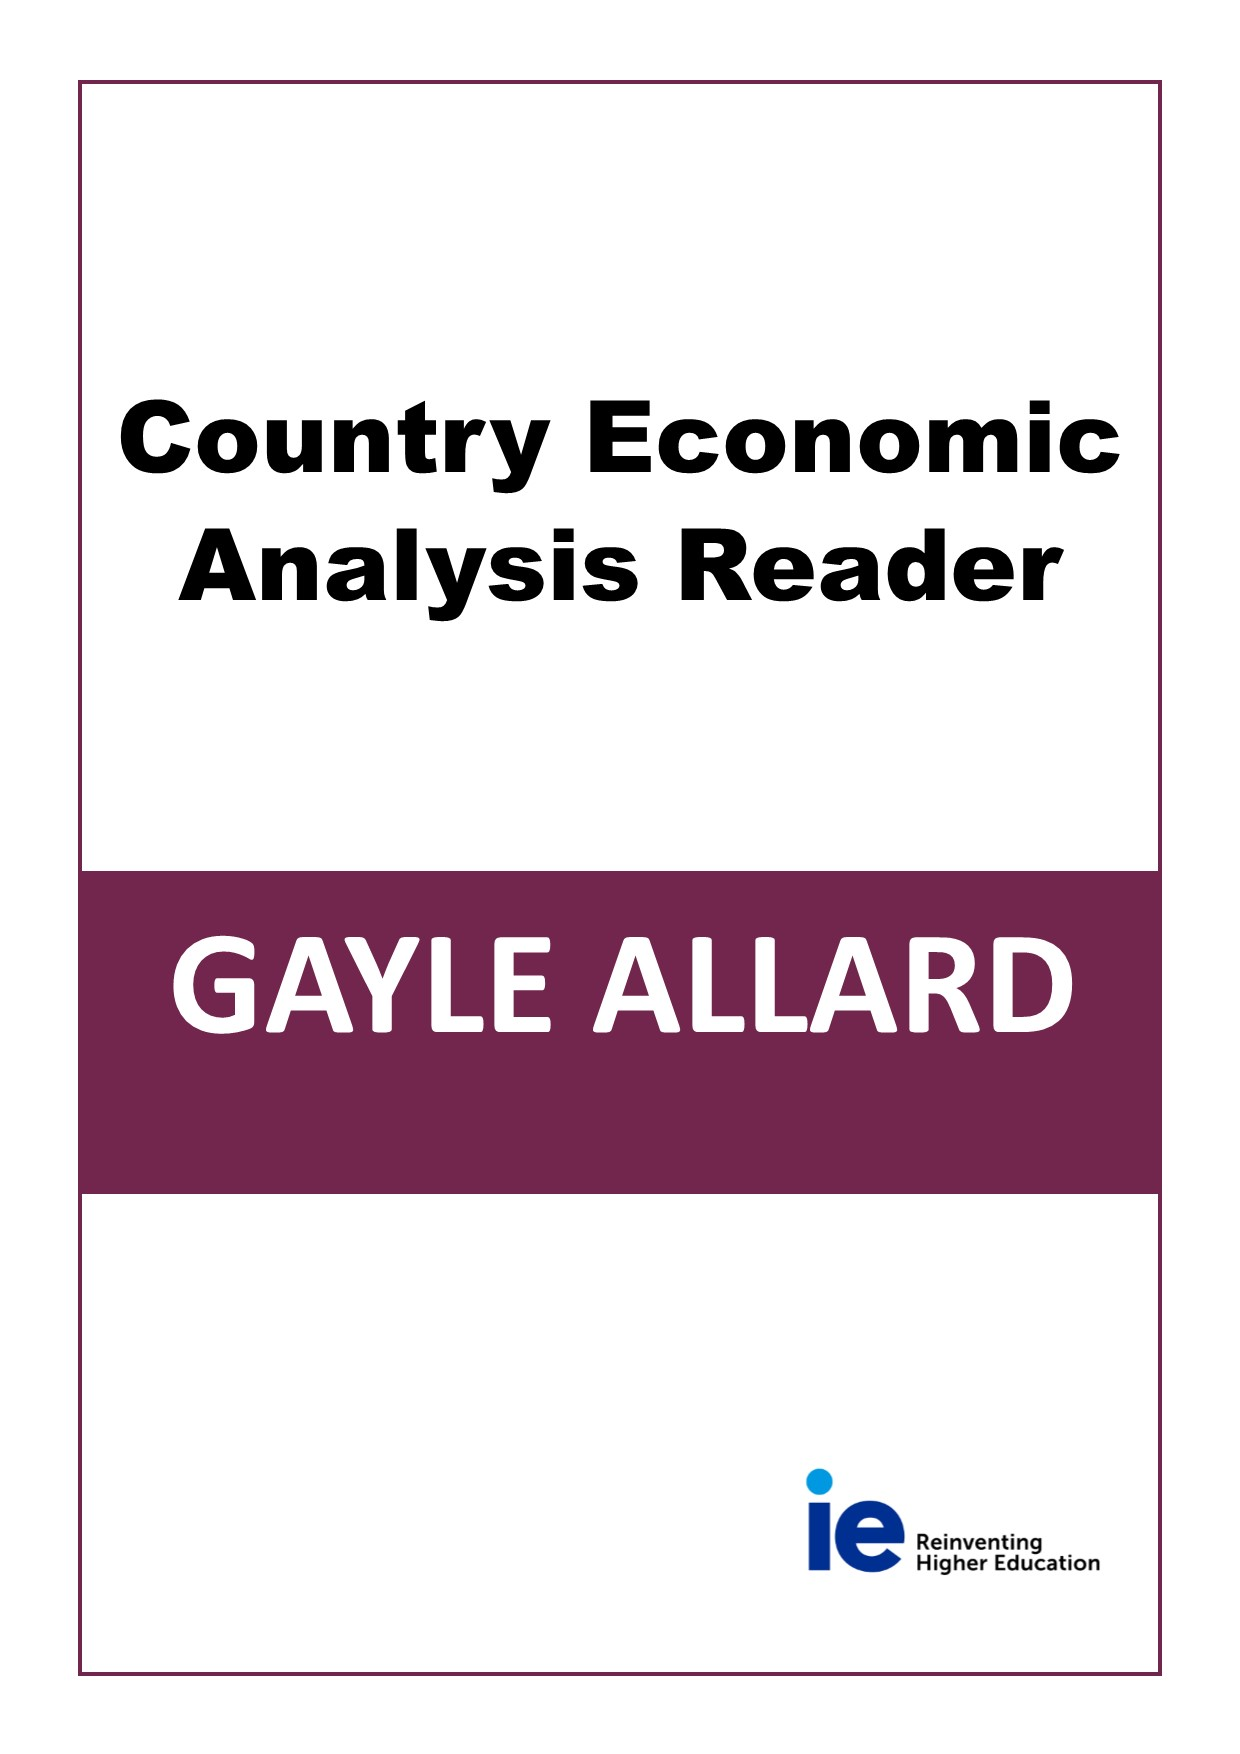 Country Economic Analysis Reader